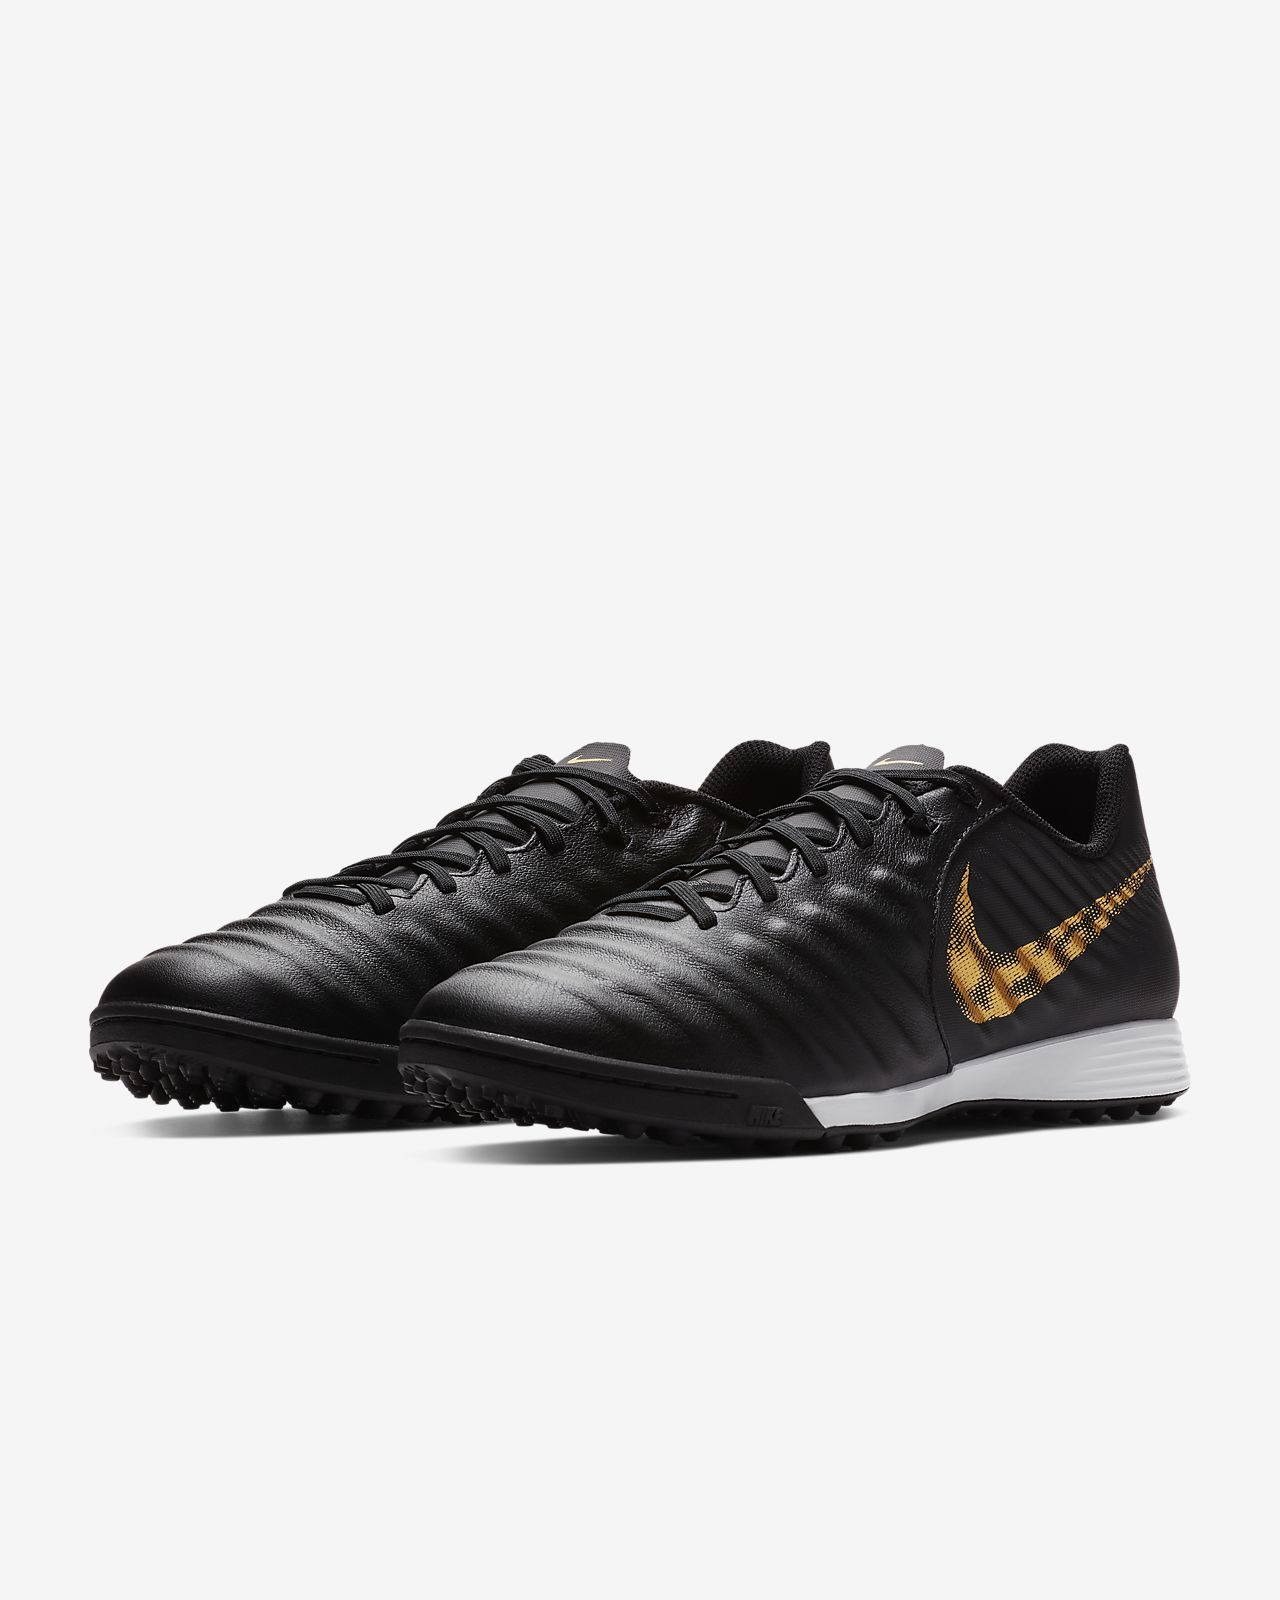 514f704e5915 Nike LegendX 7 Academy TF Artificial-Turf Football Boot. Nike.com AU